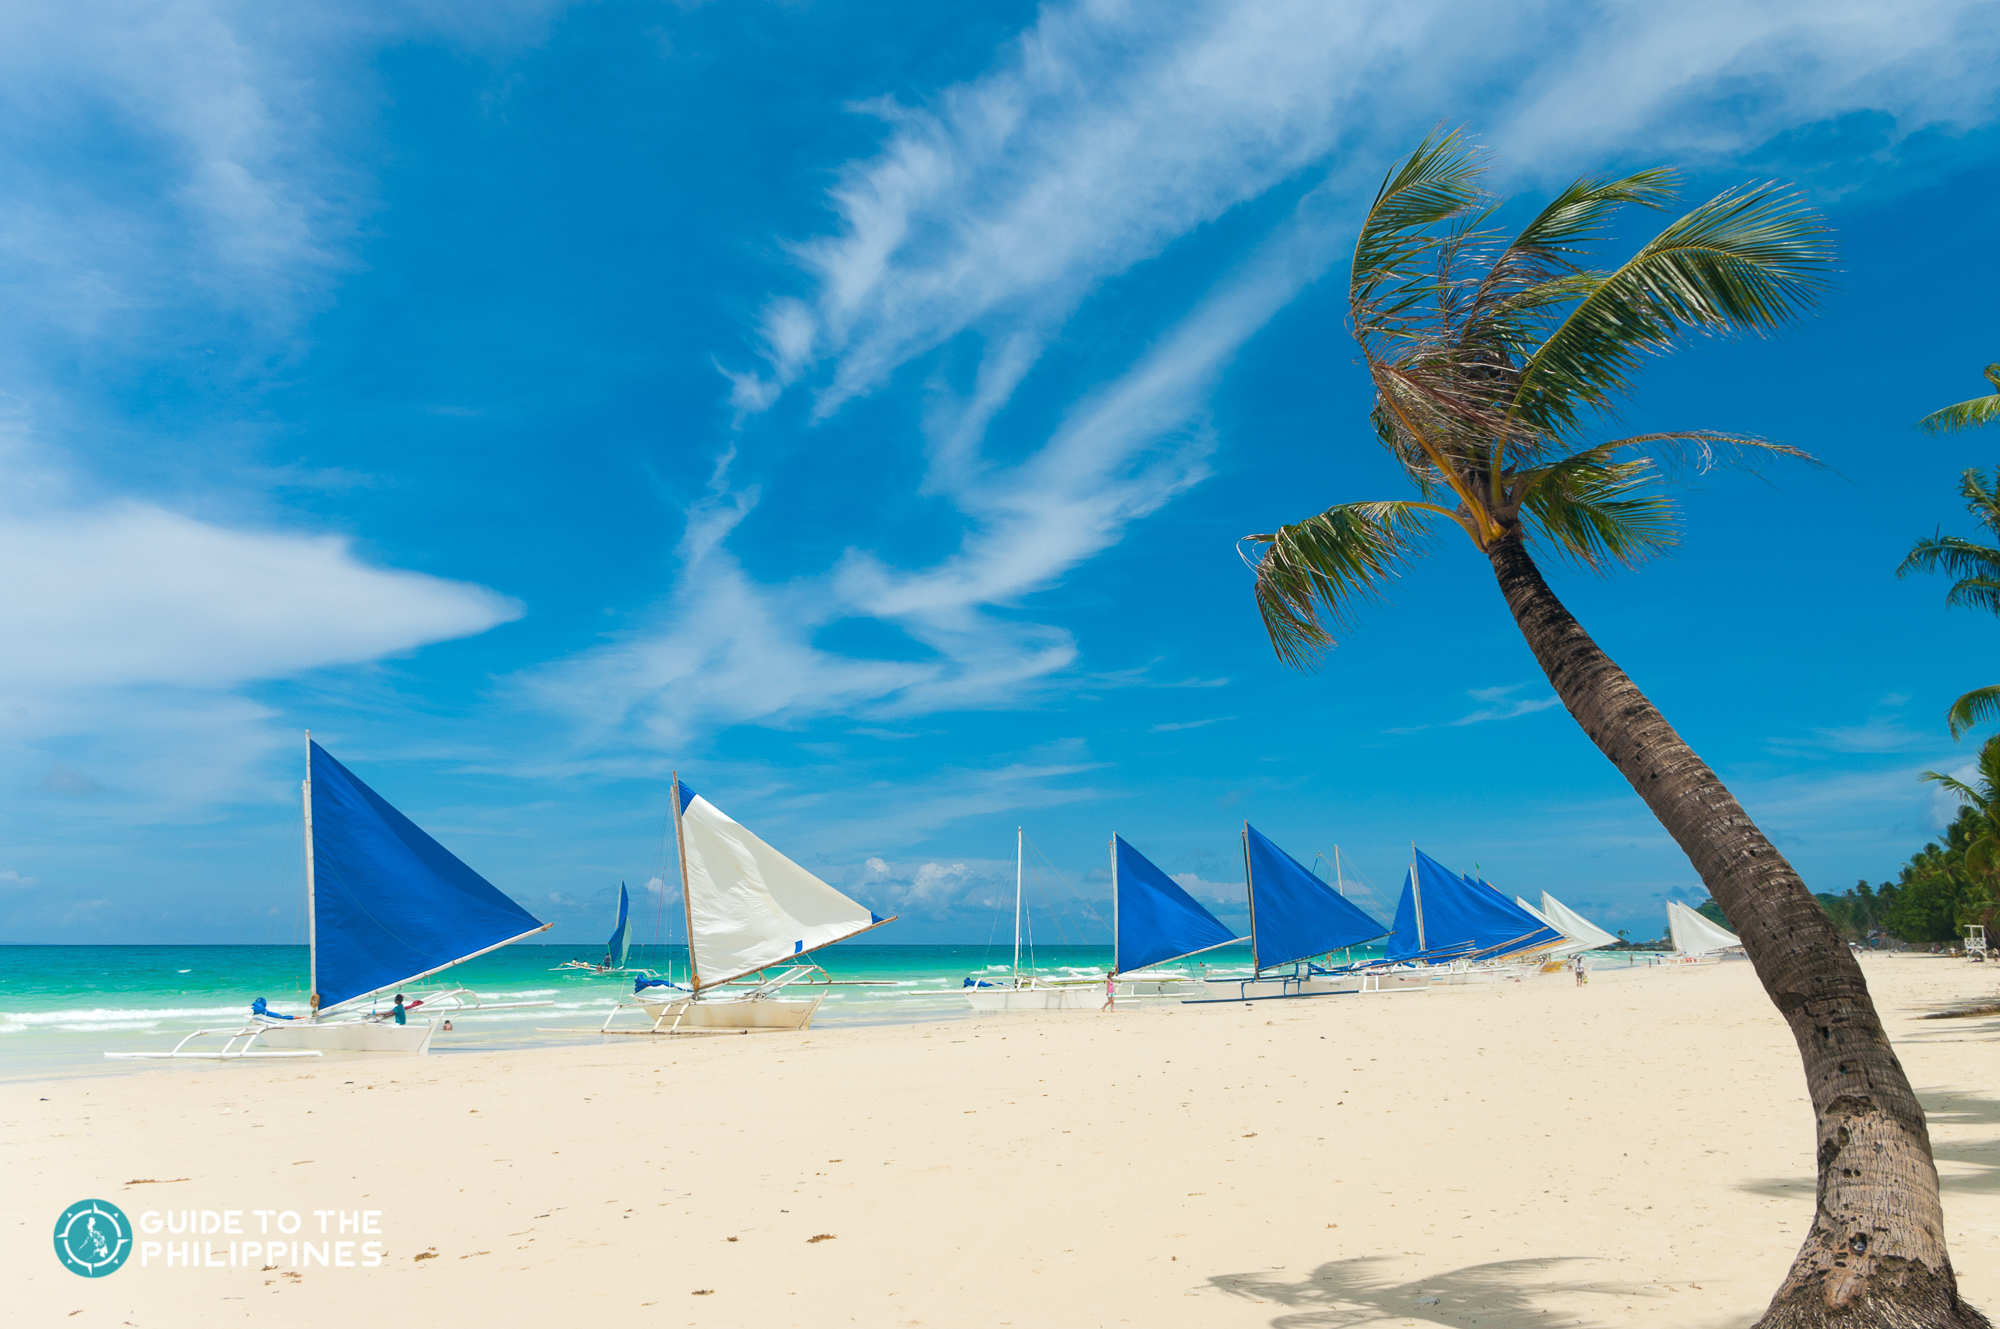 Package Deal to Boracay with Jinjiang Inn & Philippine Airlines for 3 Days & 2 Nights from Manila - day 3